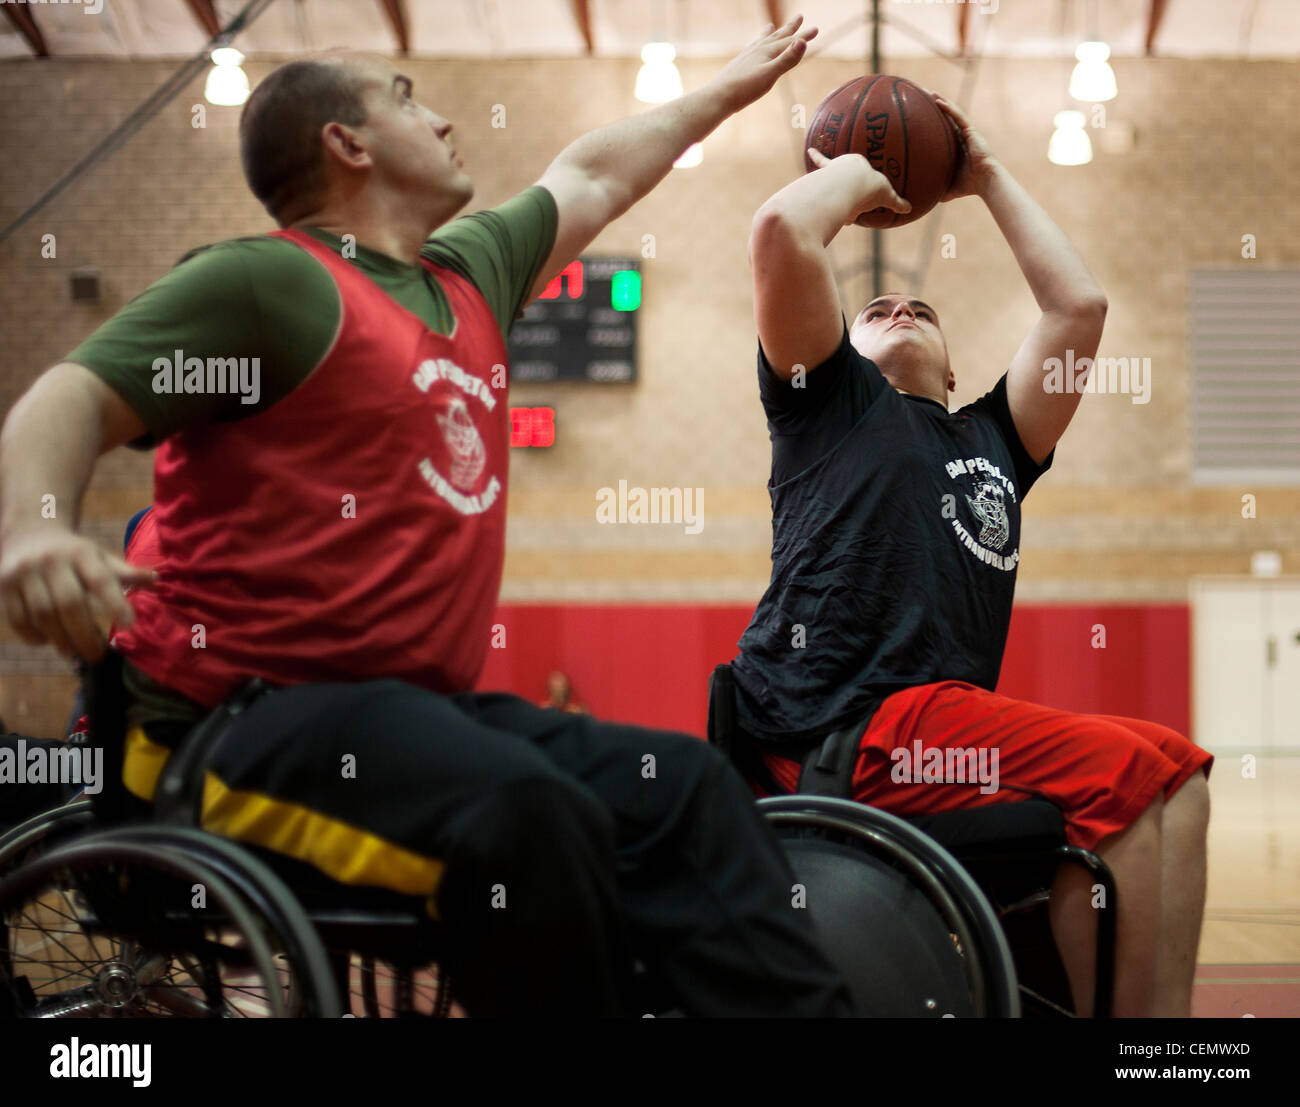 Lance Cpl. Zach Blair, a Wounded Warrior with the West Team, takes a shot during a playoff game at the 2012 Marine - Stock Image